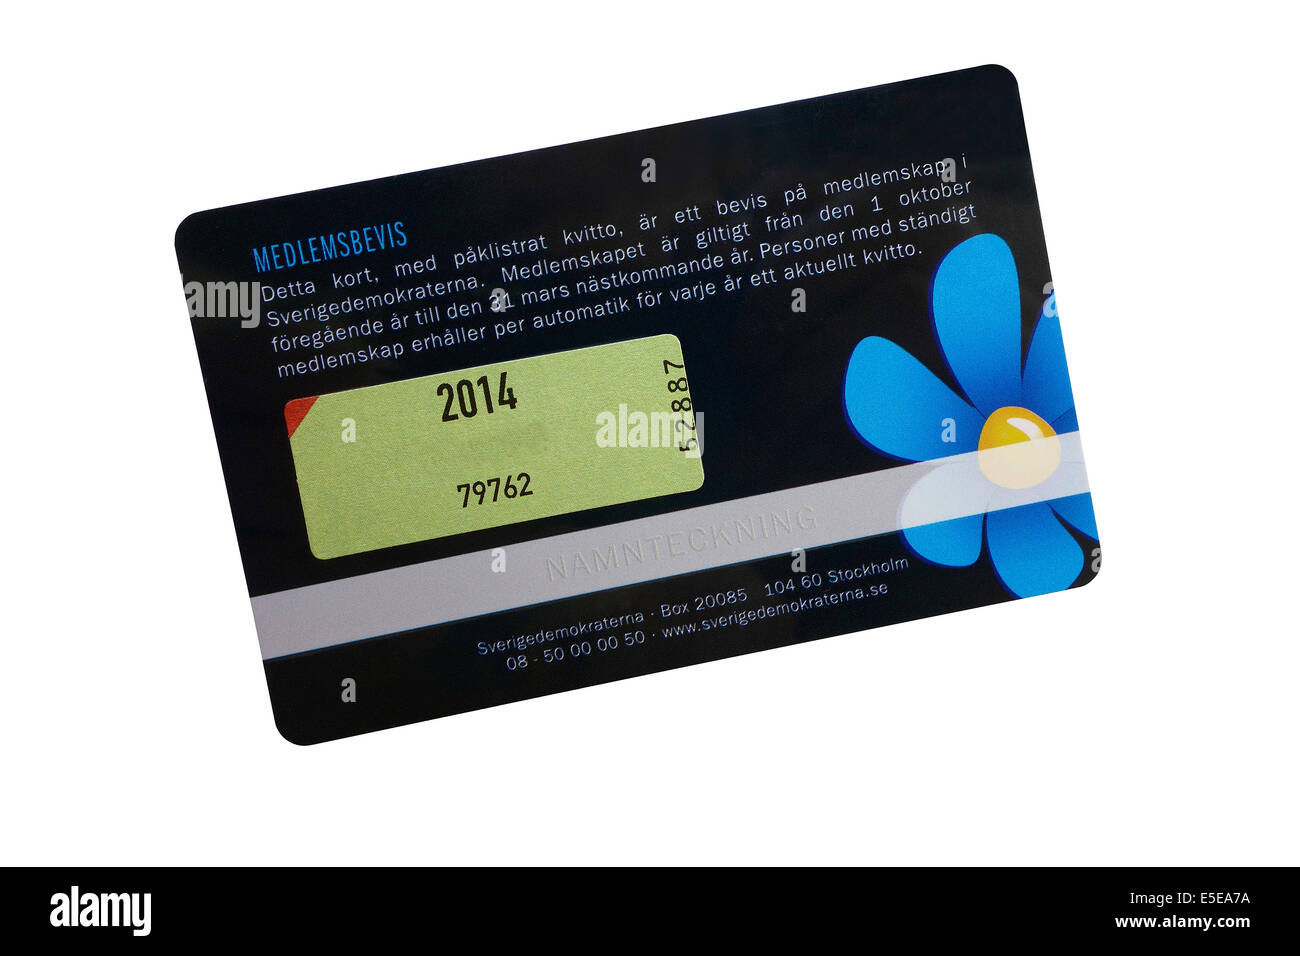 The Sweden Democrats or Swedish Democrats political party membership card back side. (name digitally removed) - Stock Image